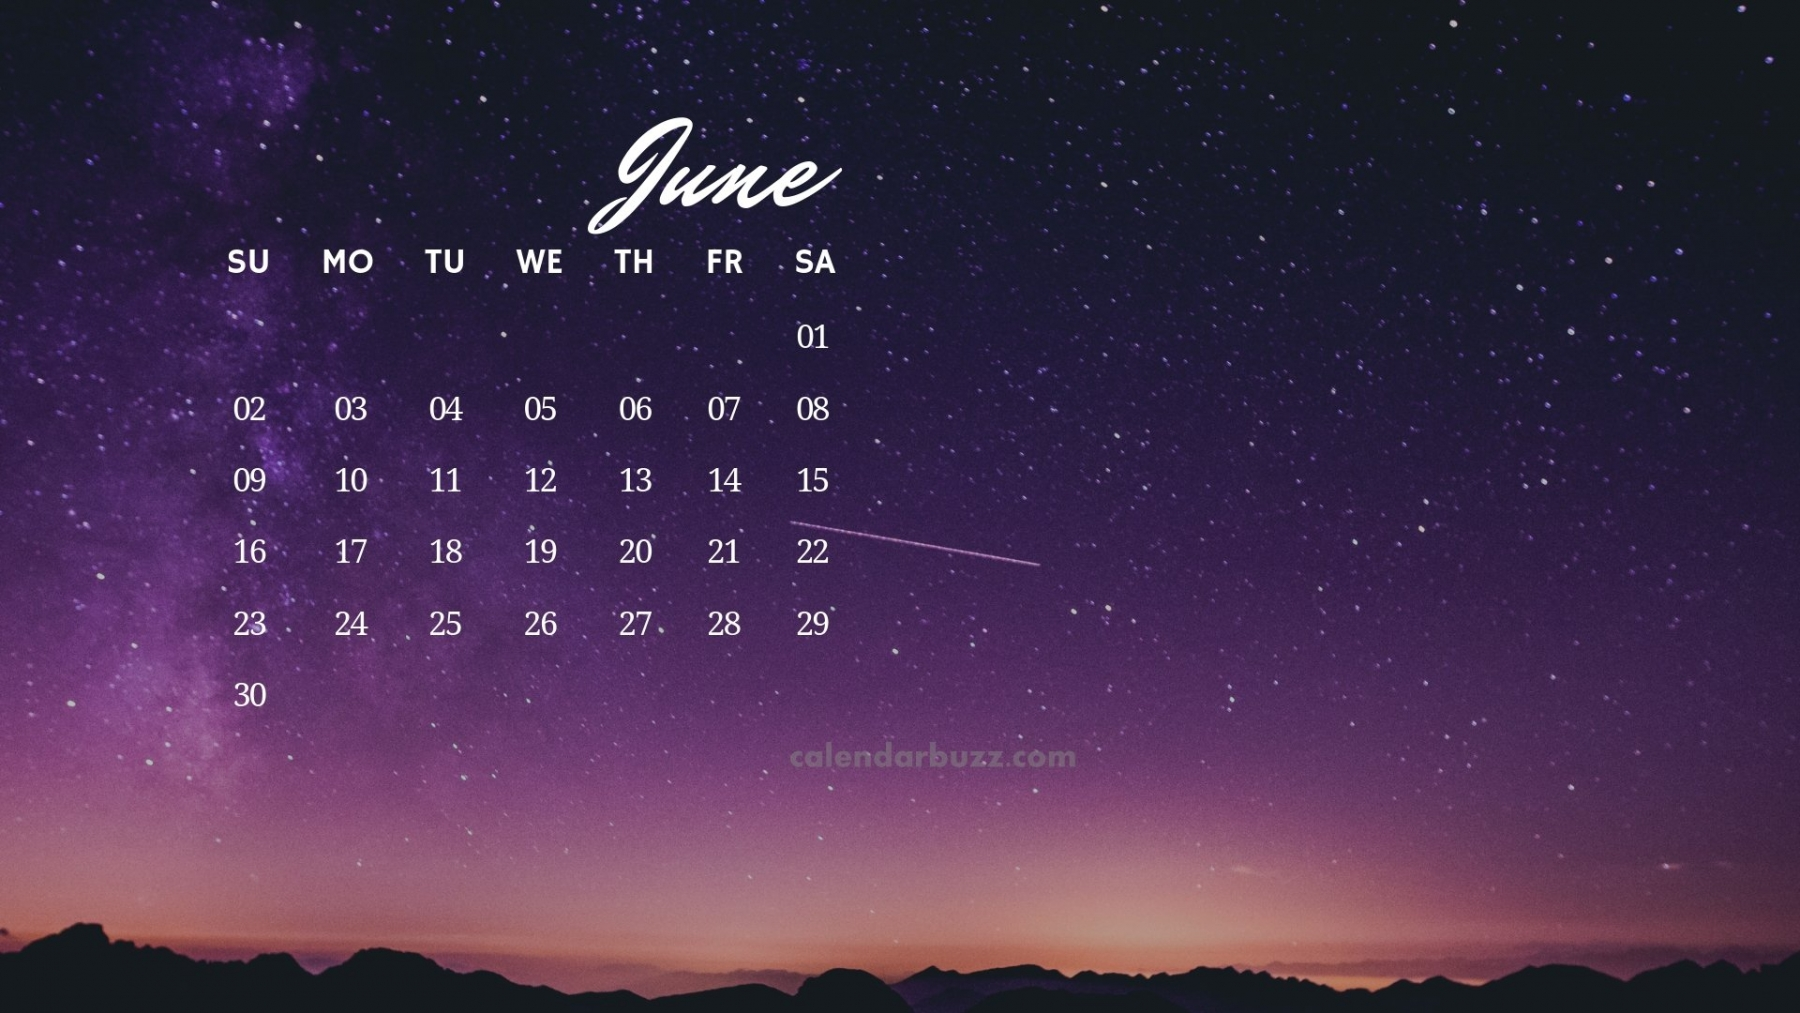 June 2019 Calendar Hd Wallpapers And Background Images Yl Computing